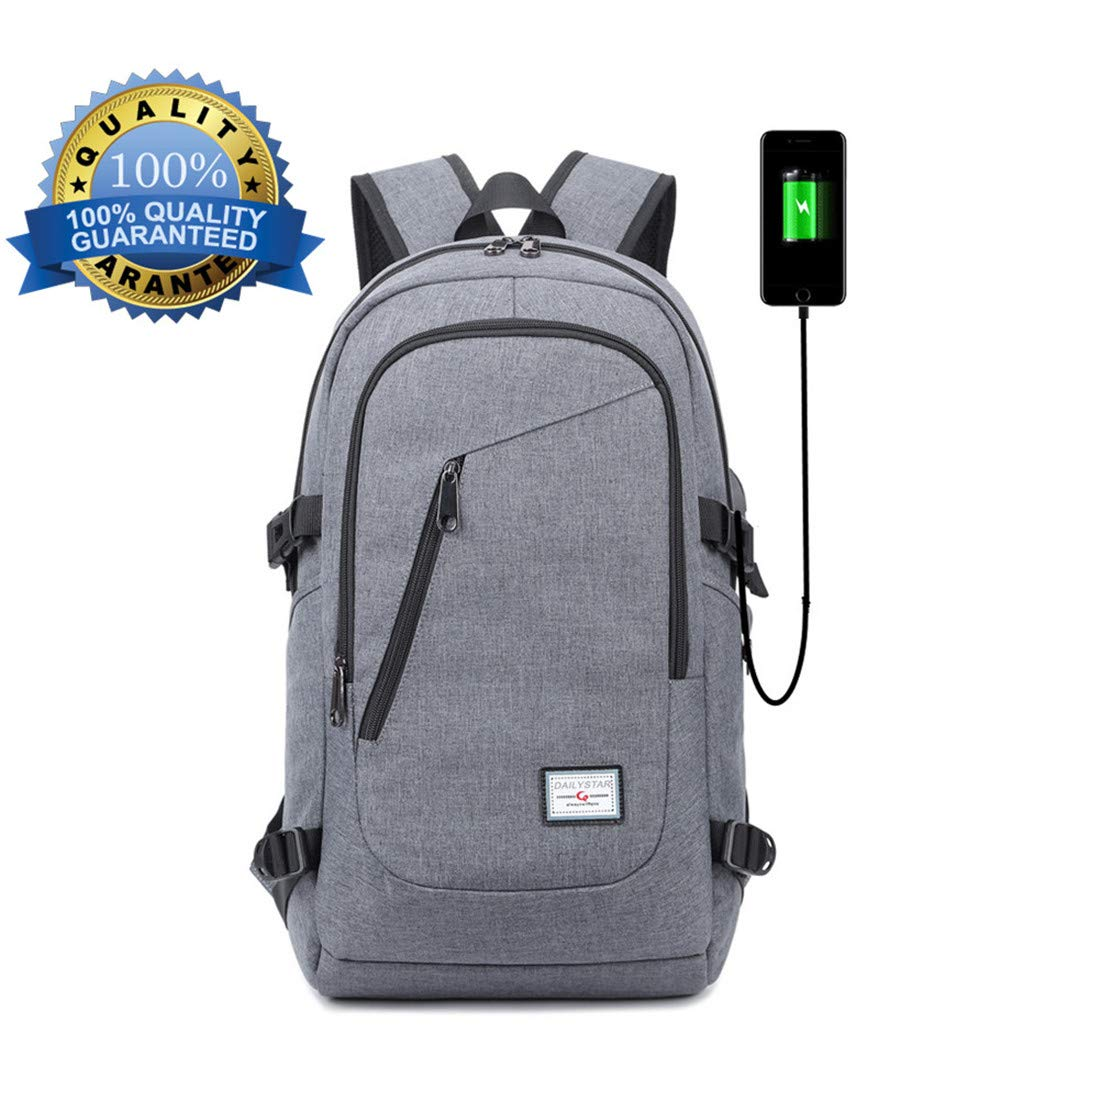 Laptop Backpack with USB Charging Port, Yawao School Business travel anti theft waterproof Larger Capacity, Fits 15/15.6 inch and below Laptop/Notebook Yowao-ca-tta 12015820031